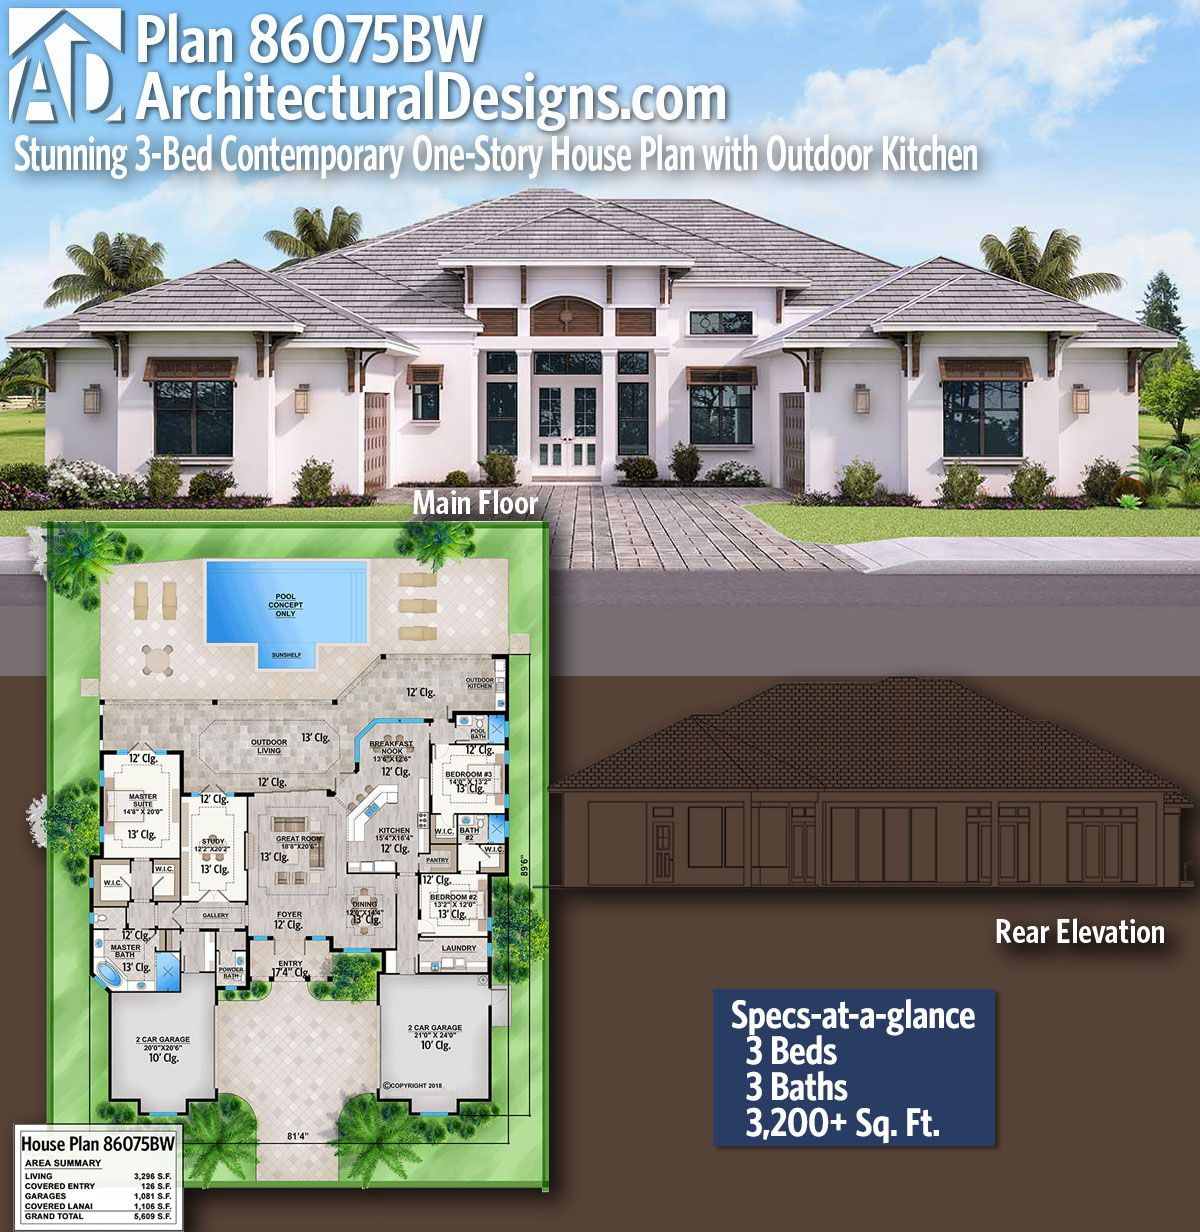 Plan 86075bw Stunning 3 Bed Contemporary One Story House Plan With Outdoor Kitchen House Plans Story House Dream House Plans